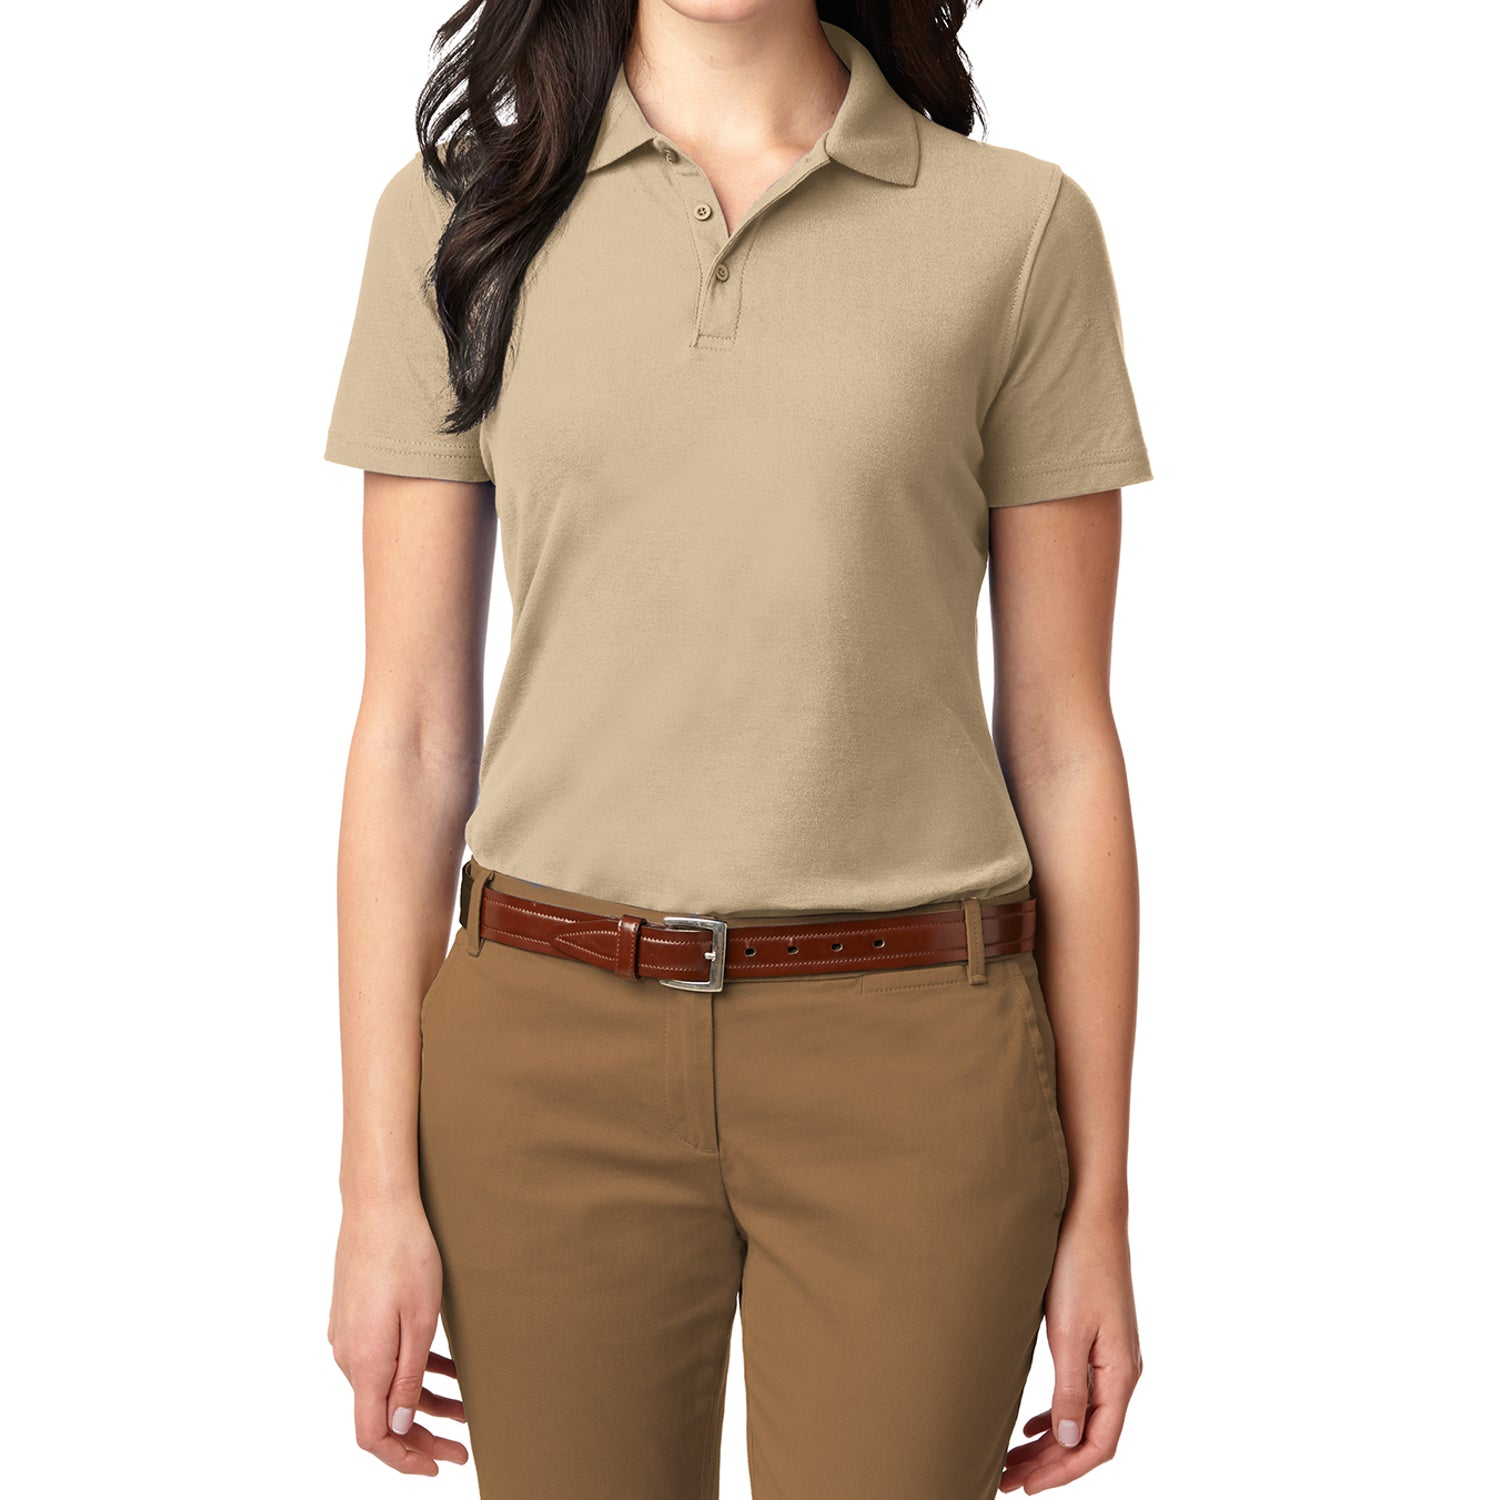 Women's Stain Resistant Polo Shirt